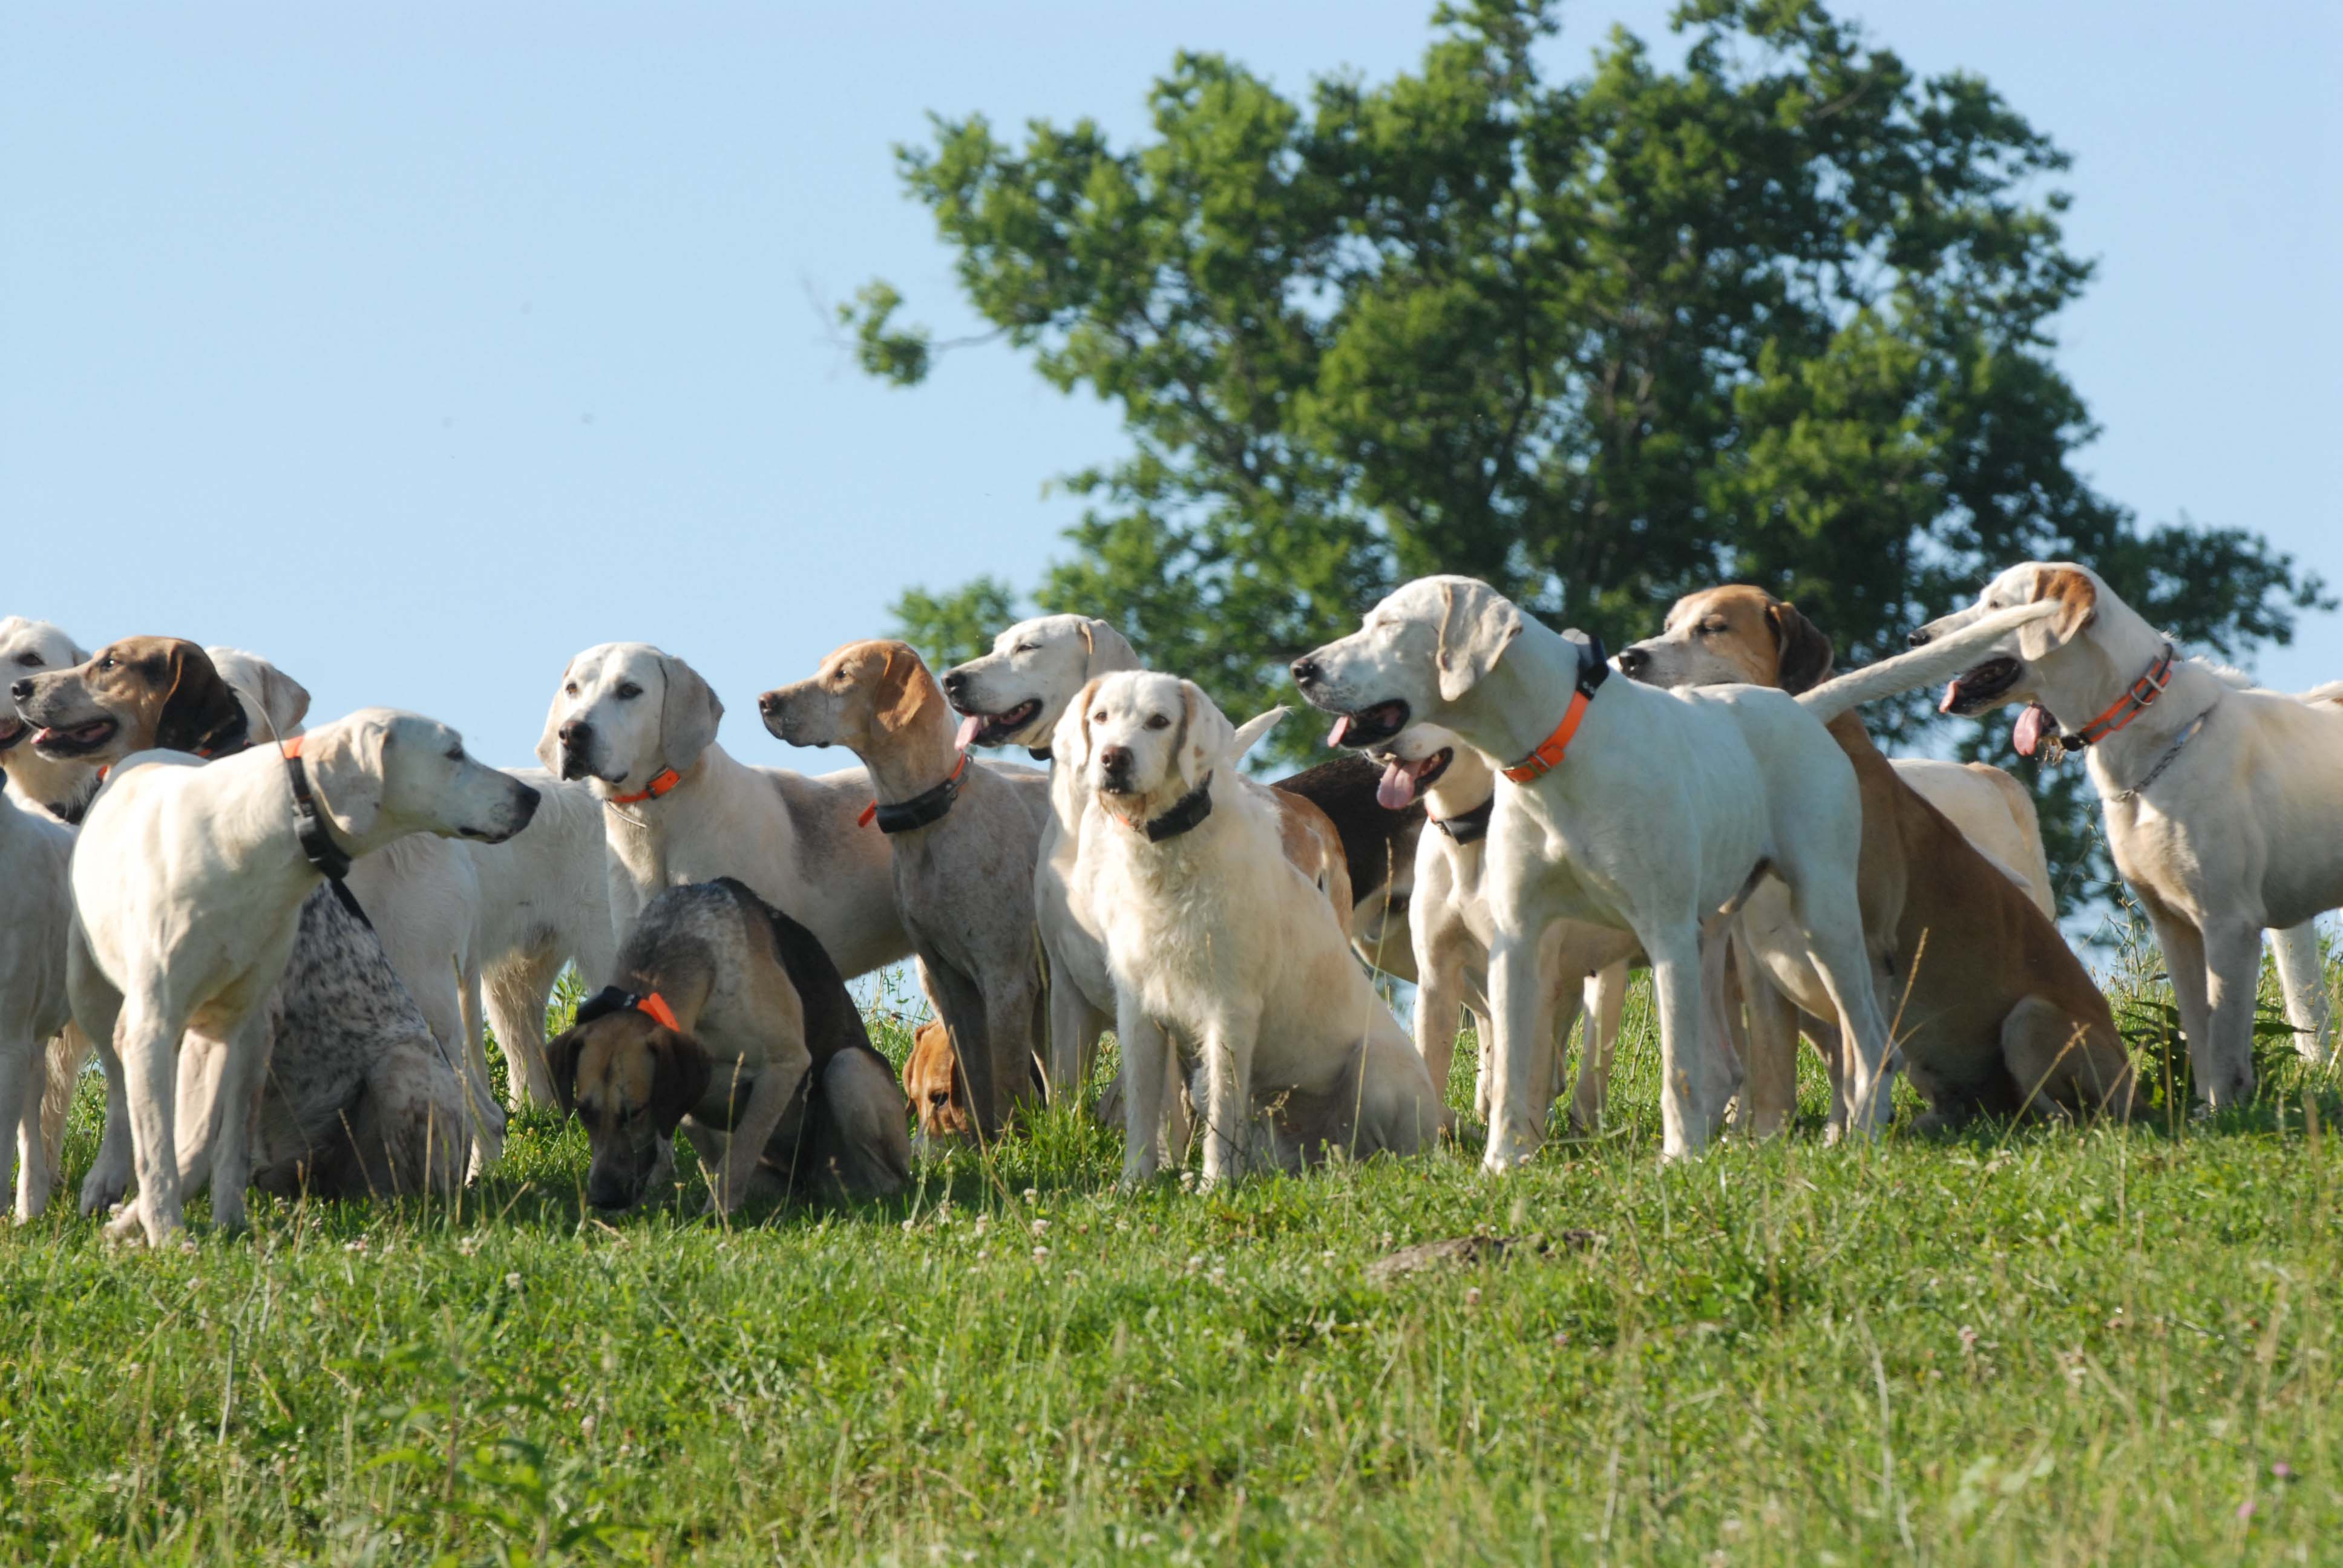 The hounds, as captured by photographer Peggy Maness